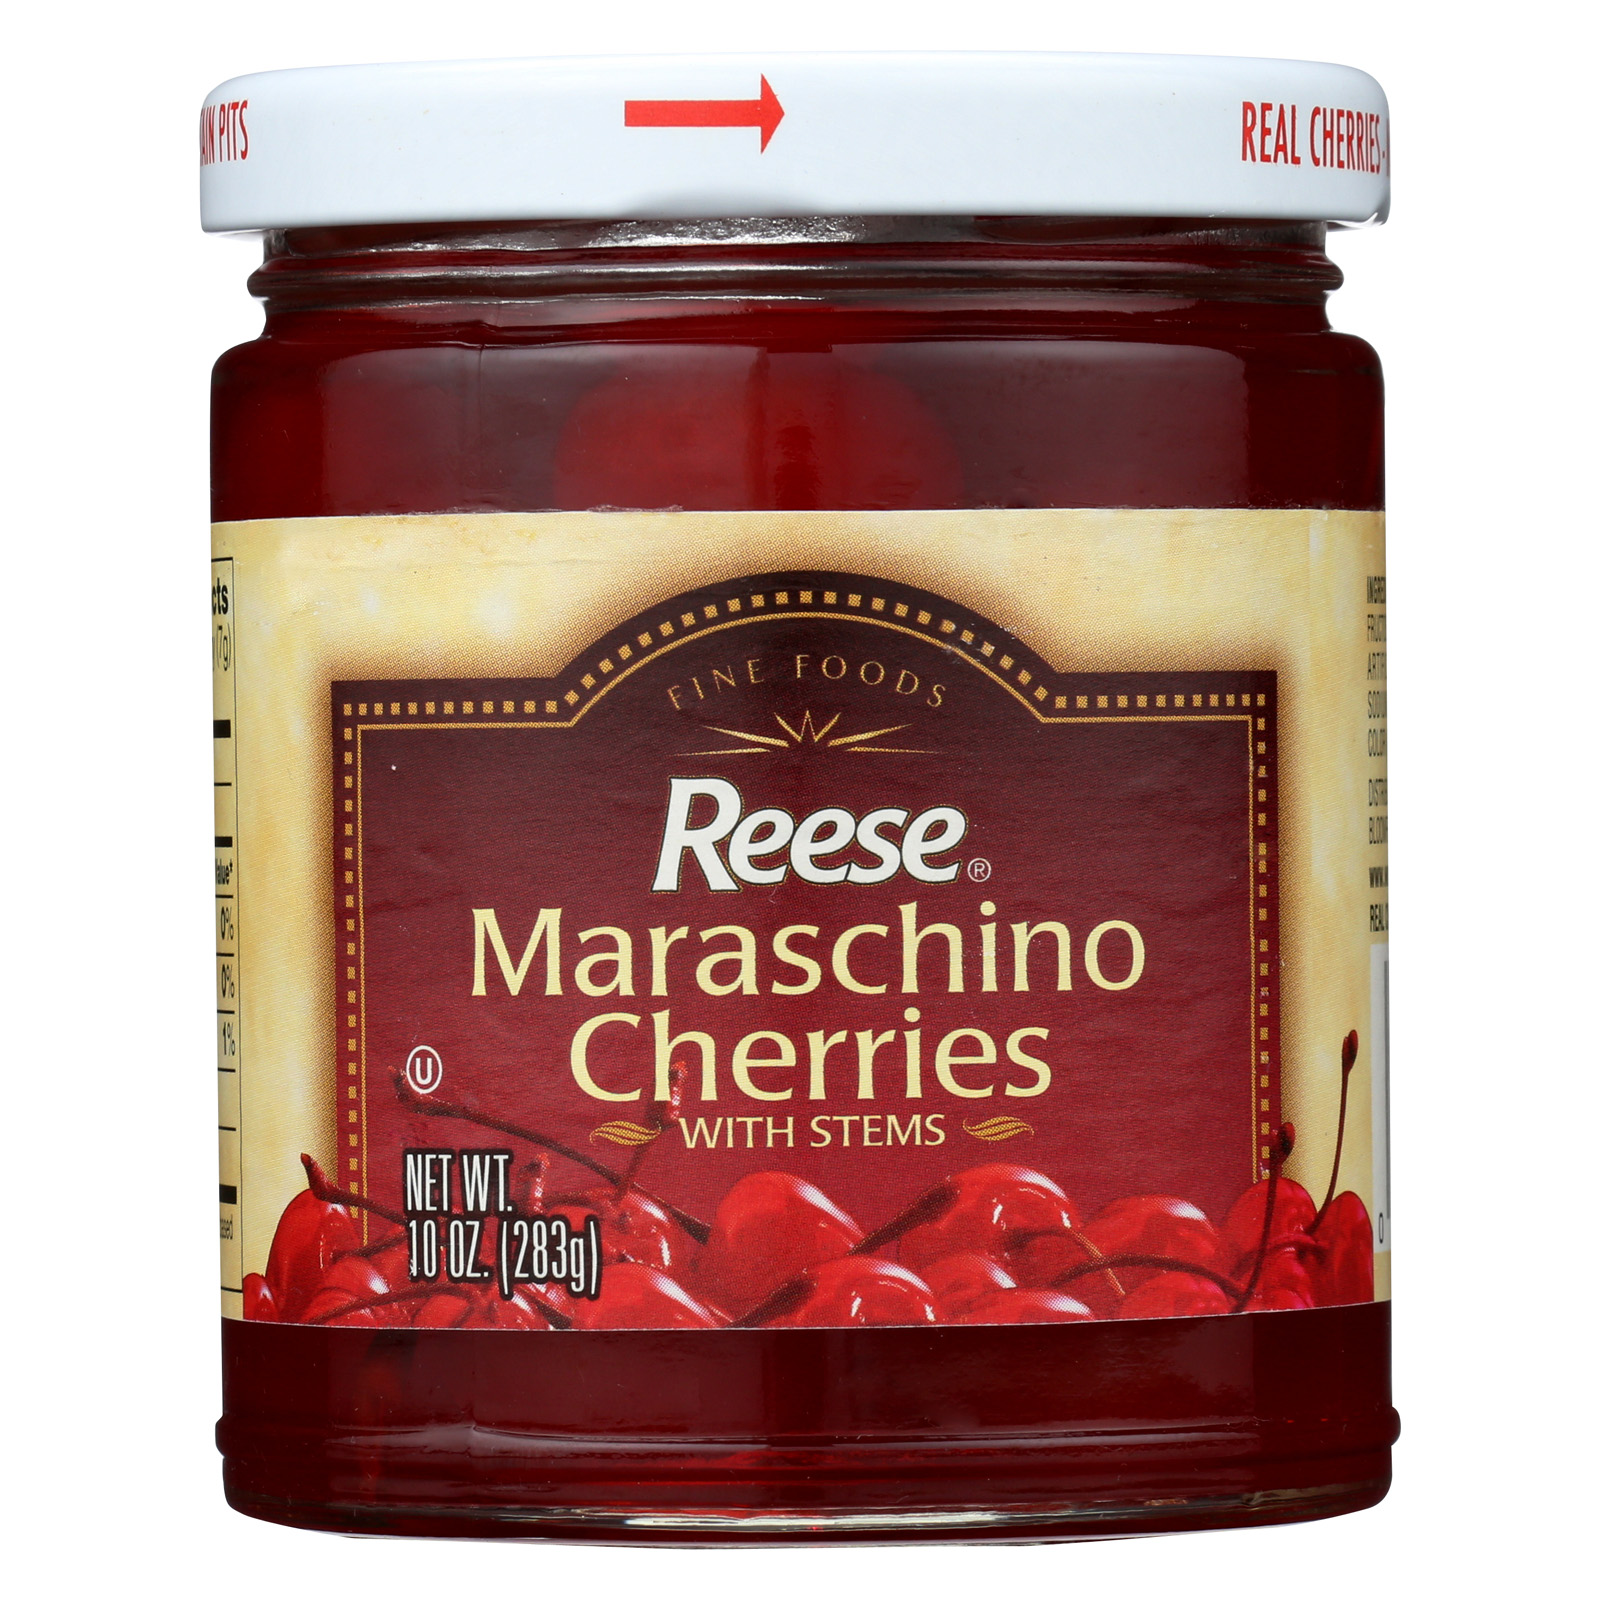 Reese Red Maraschino Cherries with Stems Case of 12 10 oz. by